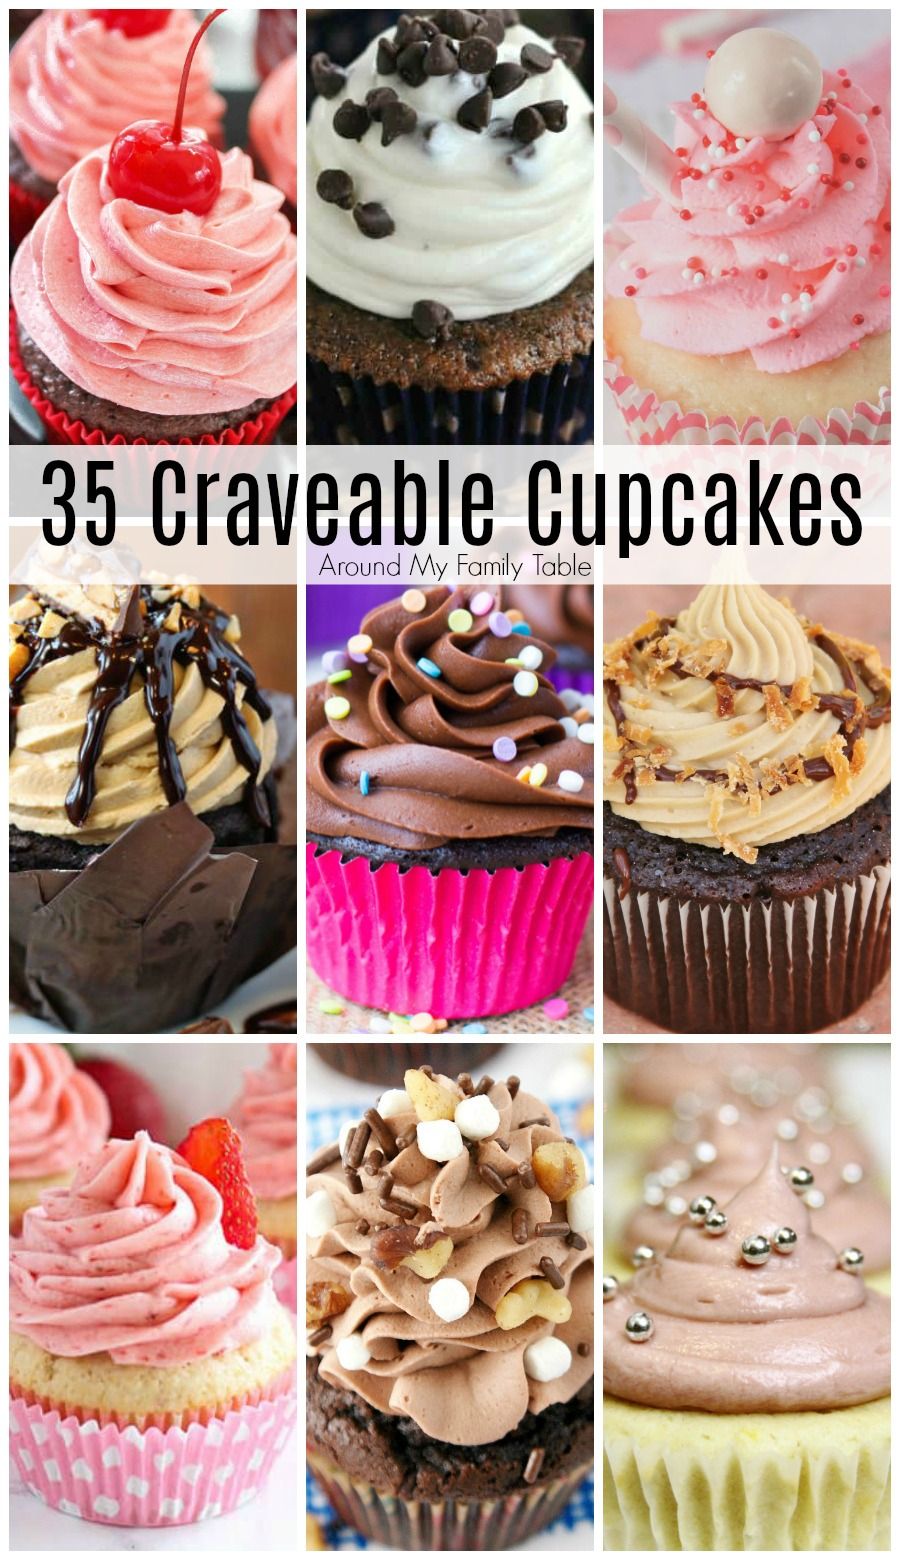 With Valentine's Day right around the corner, these 35 Craveable Cupcakes are sure to delight your sweetie.